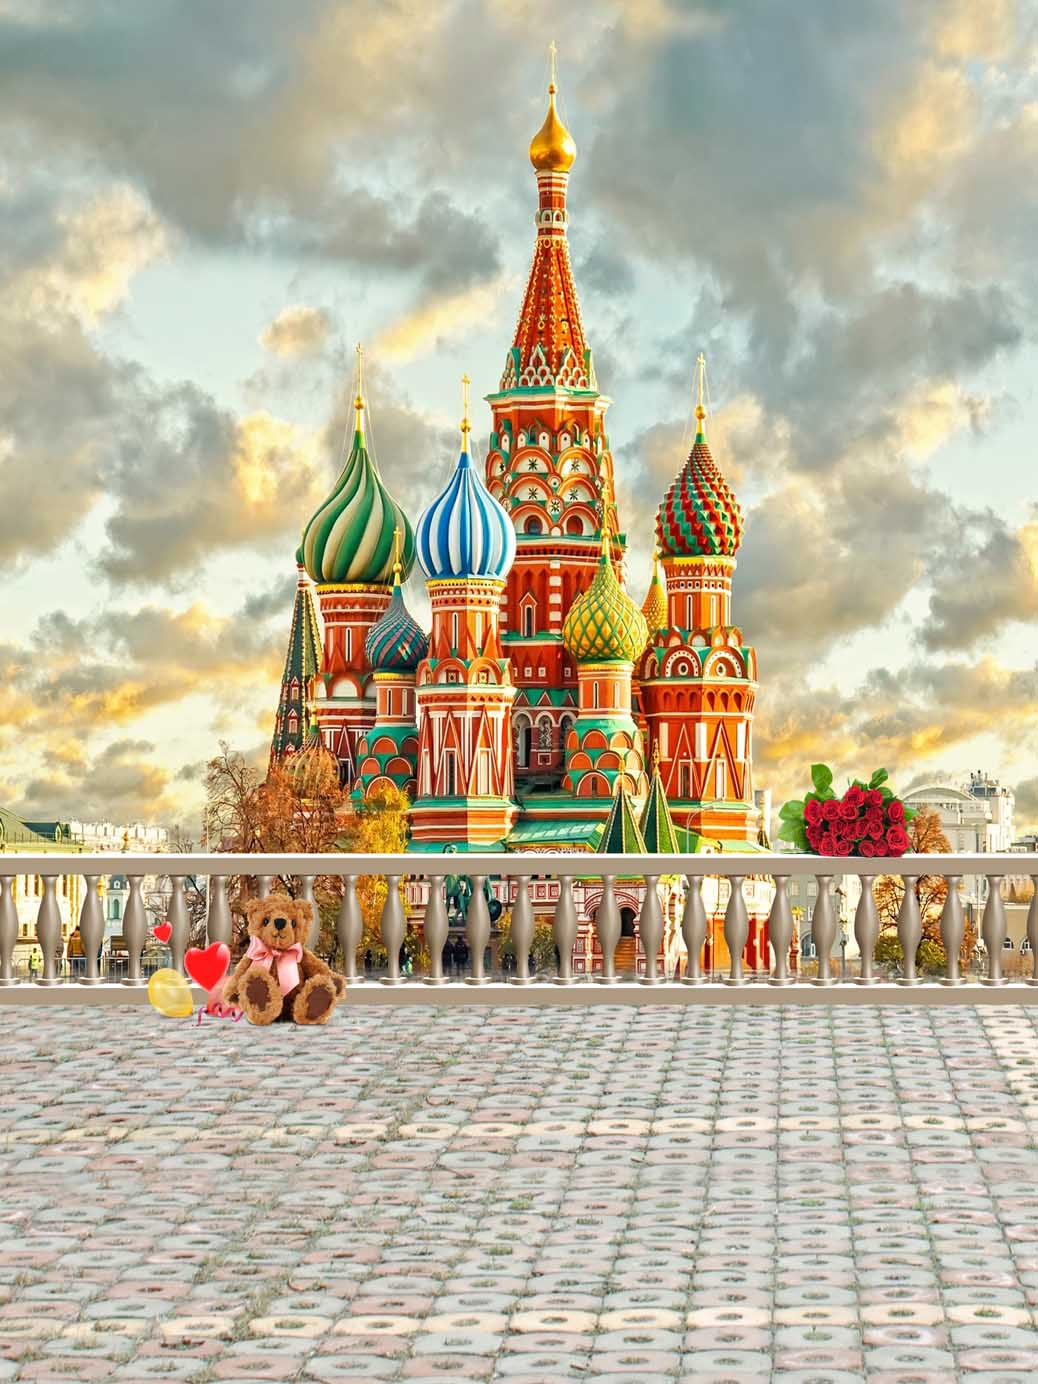 6x6FT Vinyl Photography Backdrop,Russia,Sketch Style Moscow Photo Background for Photo Booth Studio Props